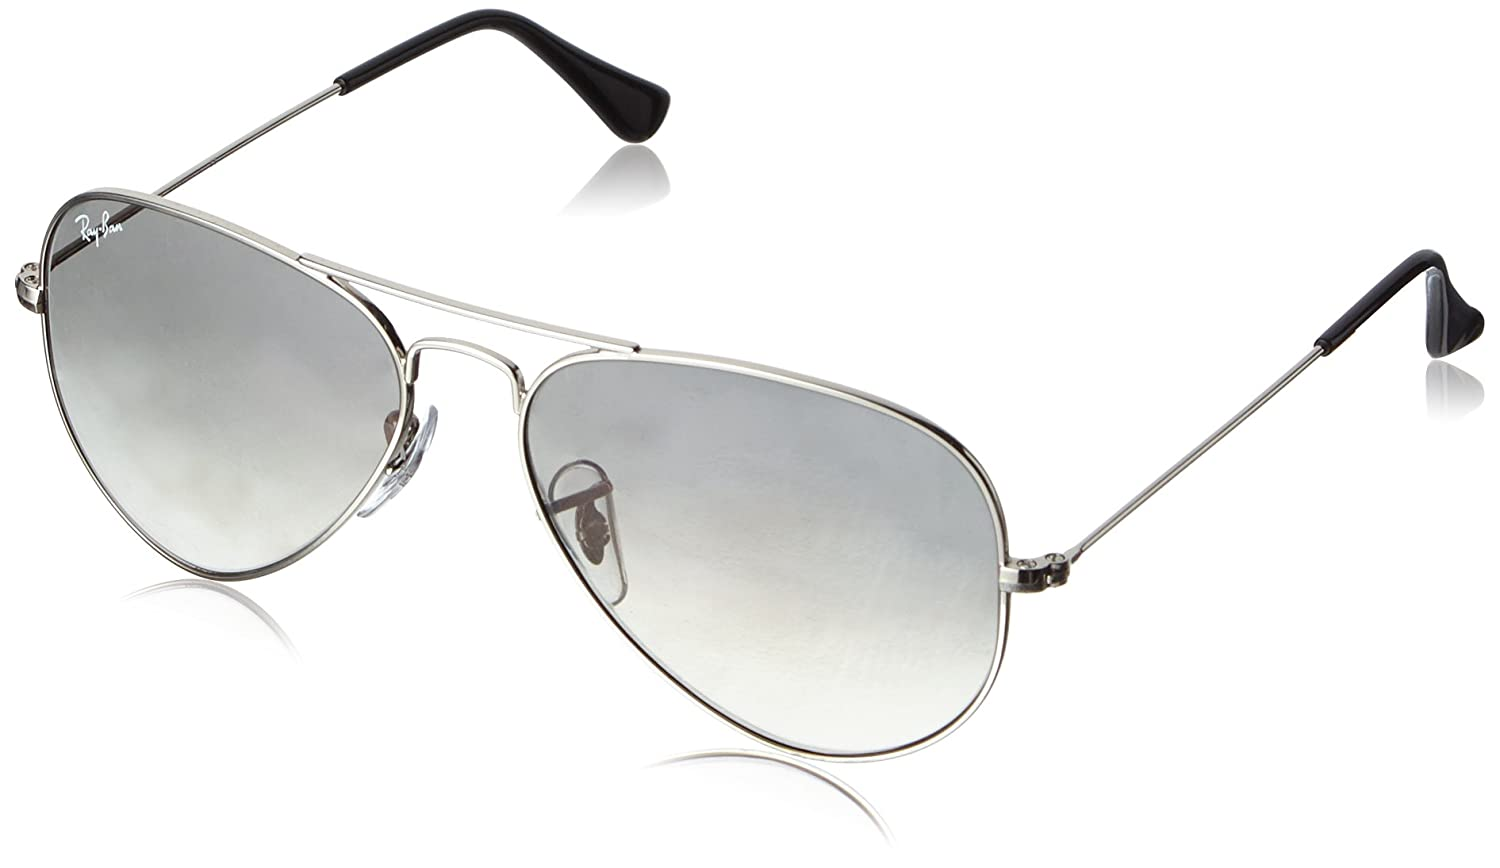 ray bans sunglasses rb3025  amazon: ray ban 0rb3025 aviator metal non polarized sunglasses, silver/ crystal grey gradient, 55mm: ray ban: clothing